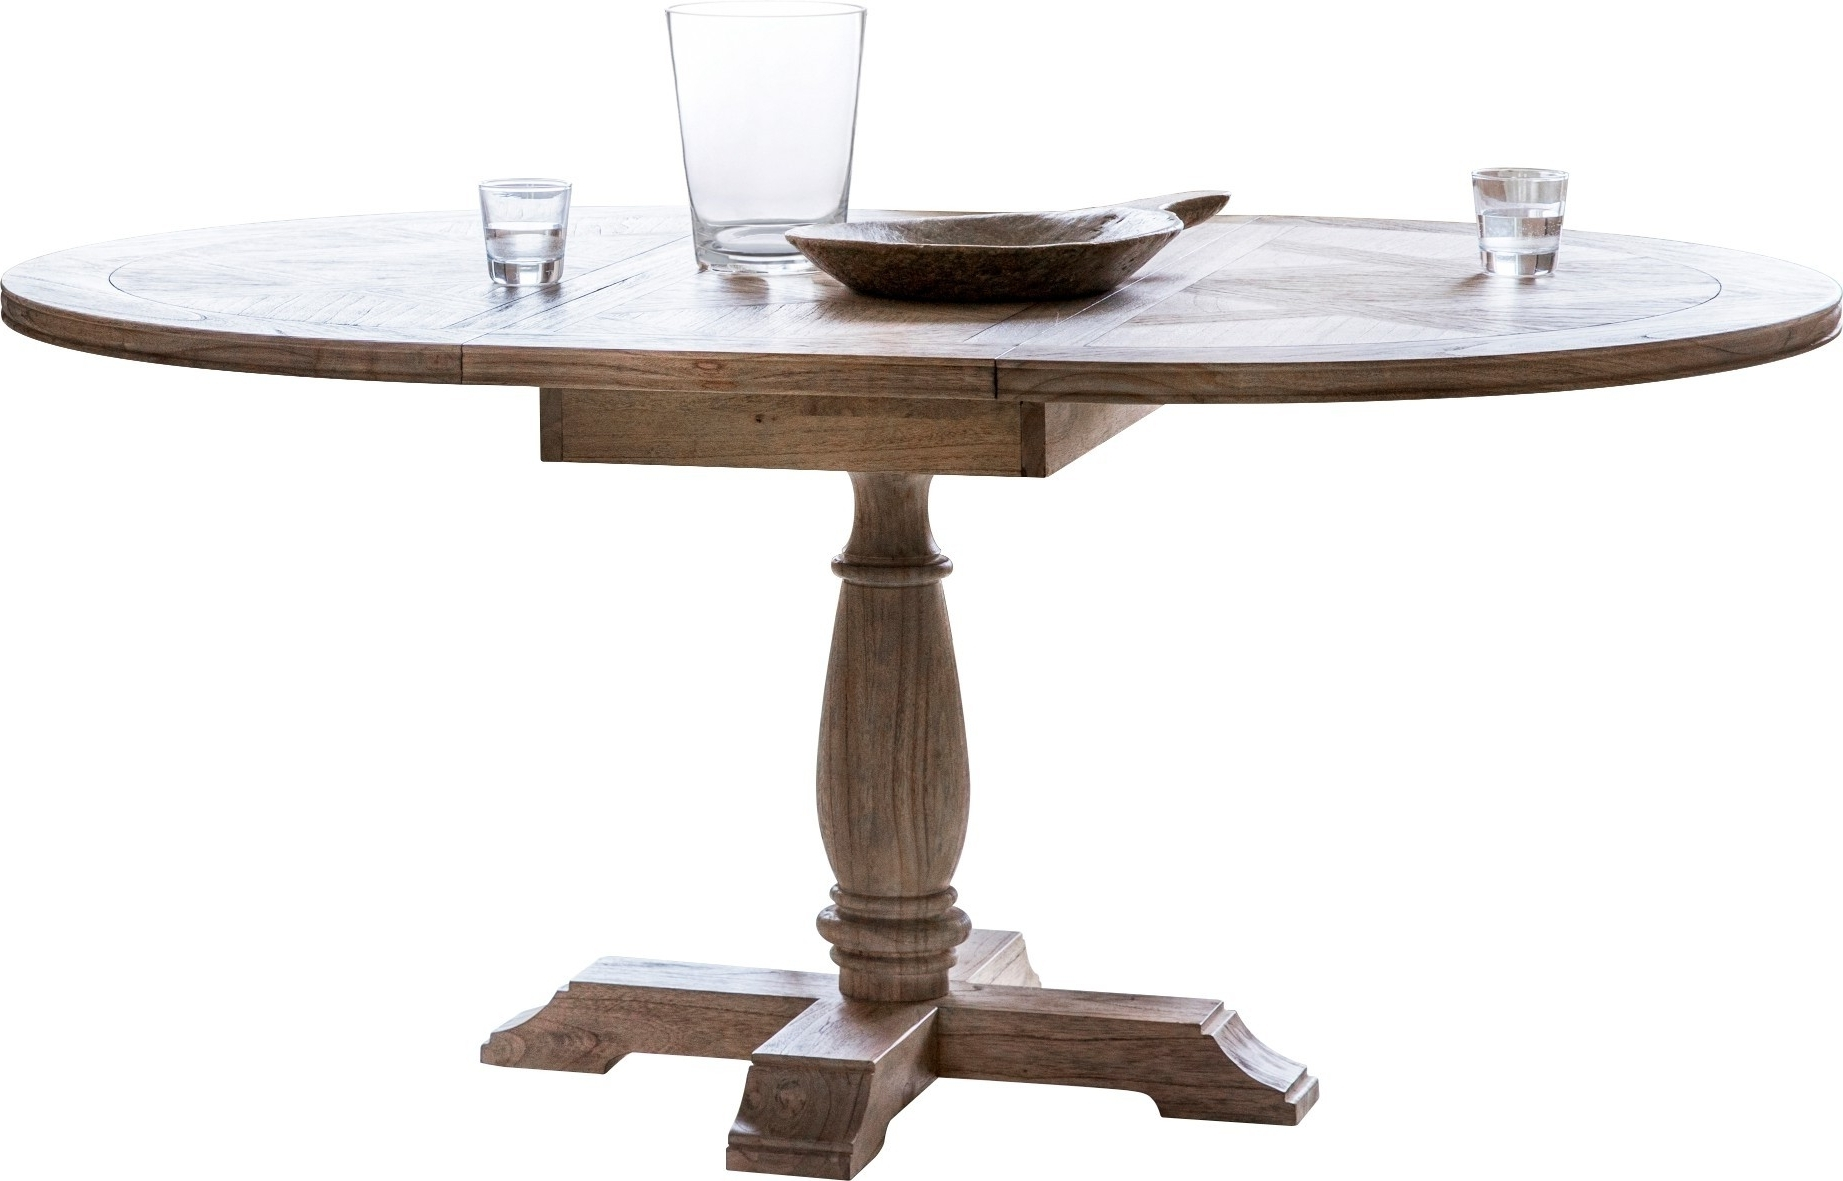 Cotswold Dining Tables Pertaining To Popular Pavilion Chic Extending Dining Table Cotswold Round (View 9 of 25)